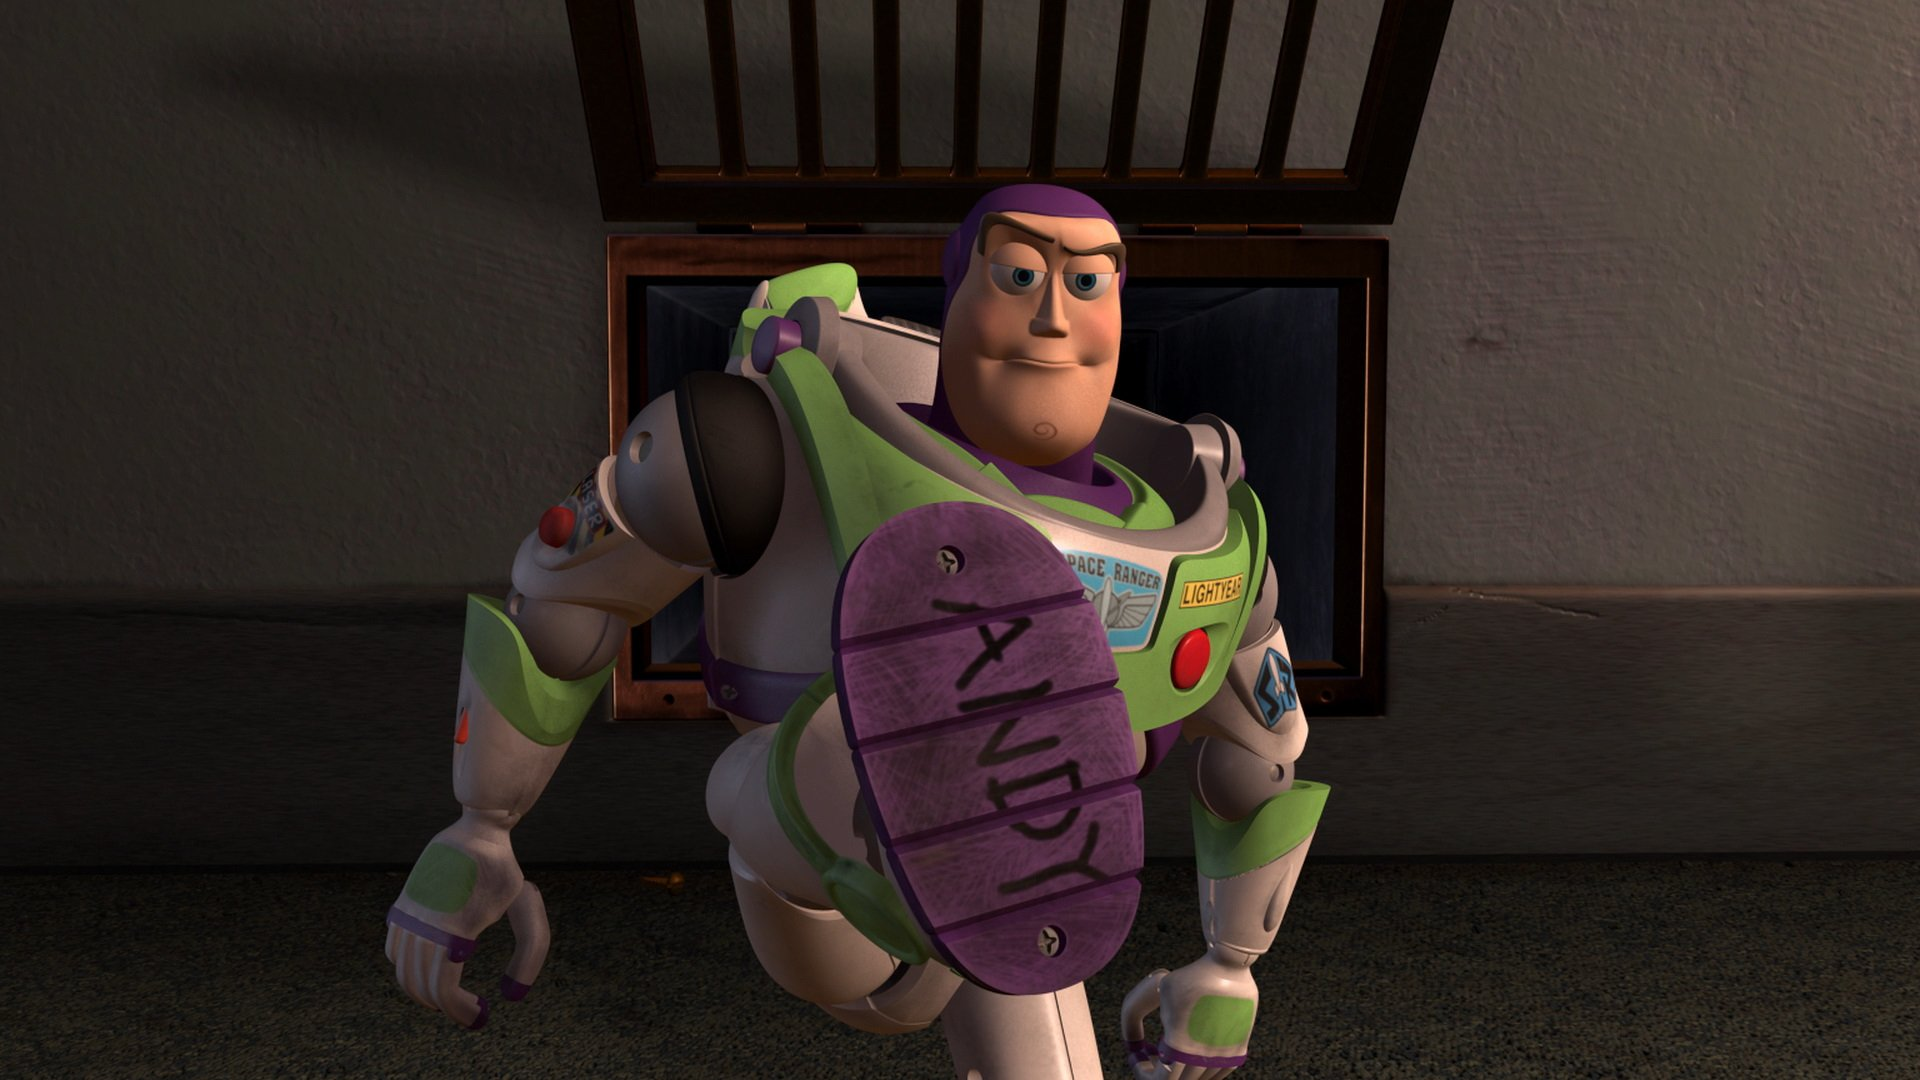 Toy Story Wallpaper Iphone 5 Toy Story Full Hd Wallpaper And Background 1920x1080